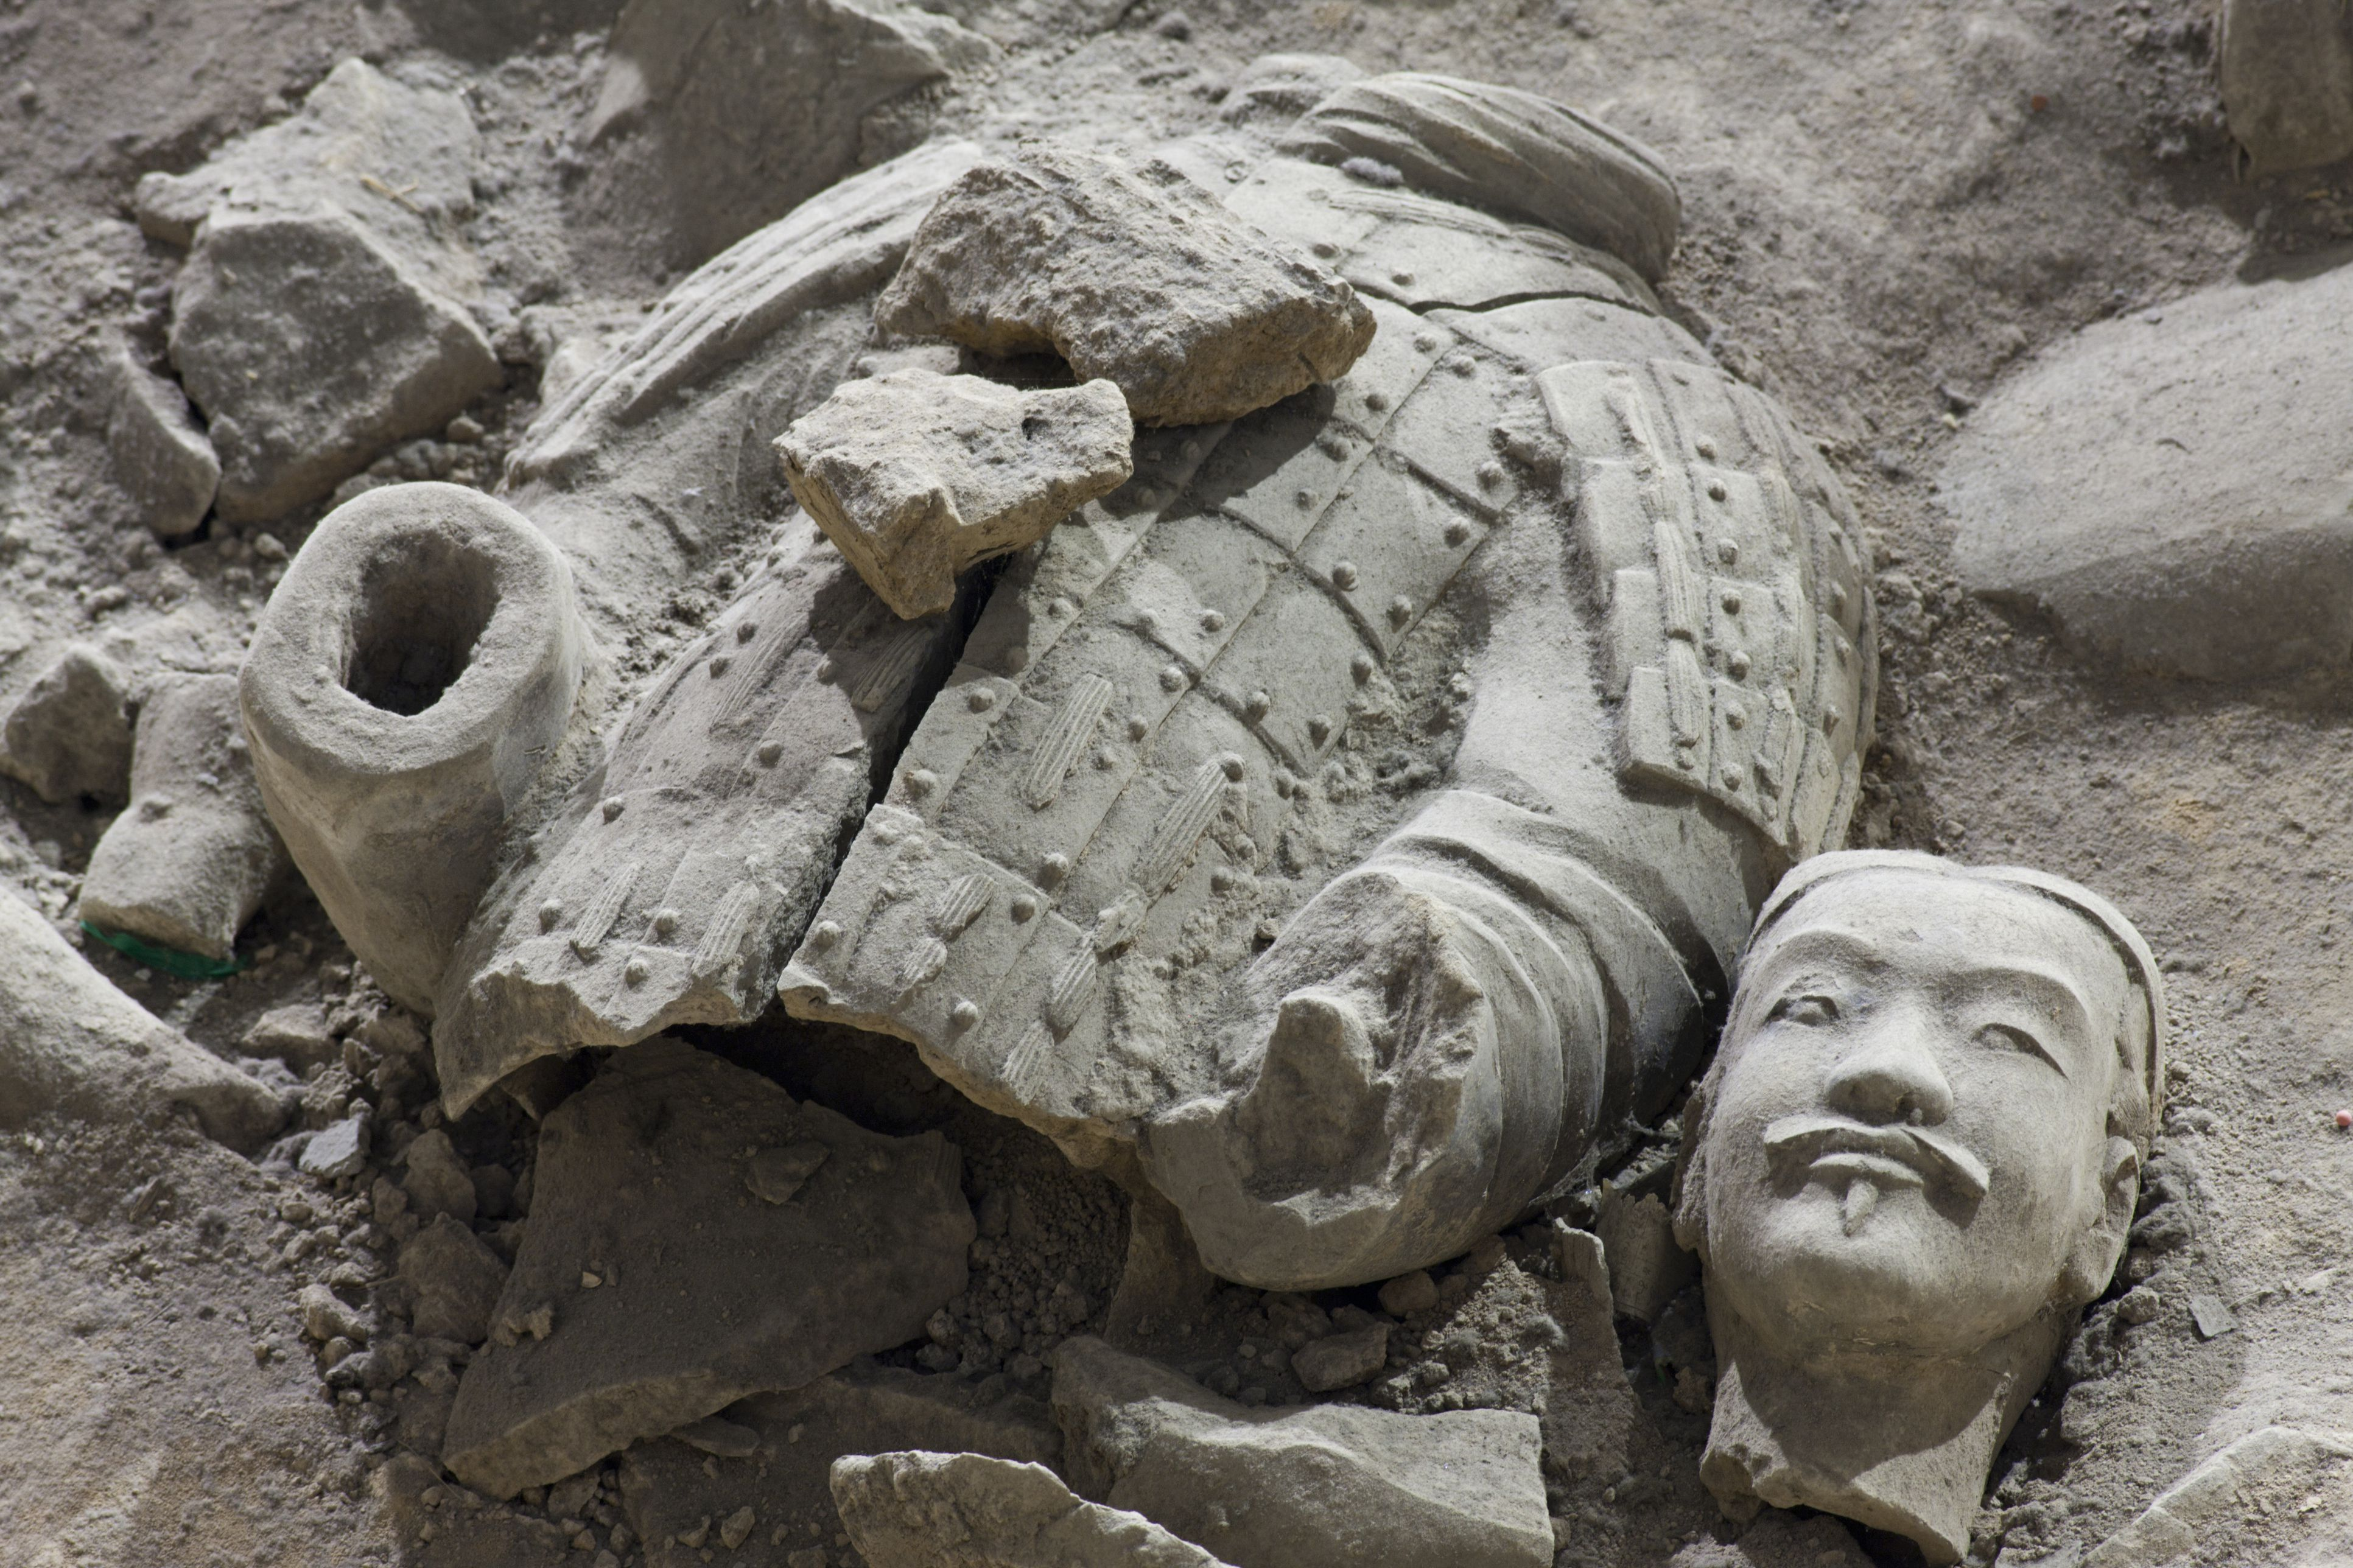 Qin shi huang biography of chinas first emperor broken terracotta soldier at qin shi huangdi tomb sciox Image collections